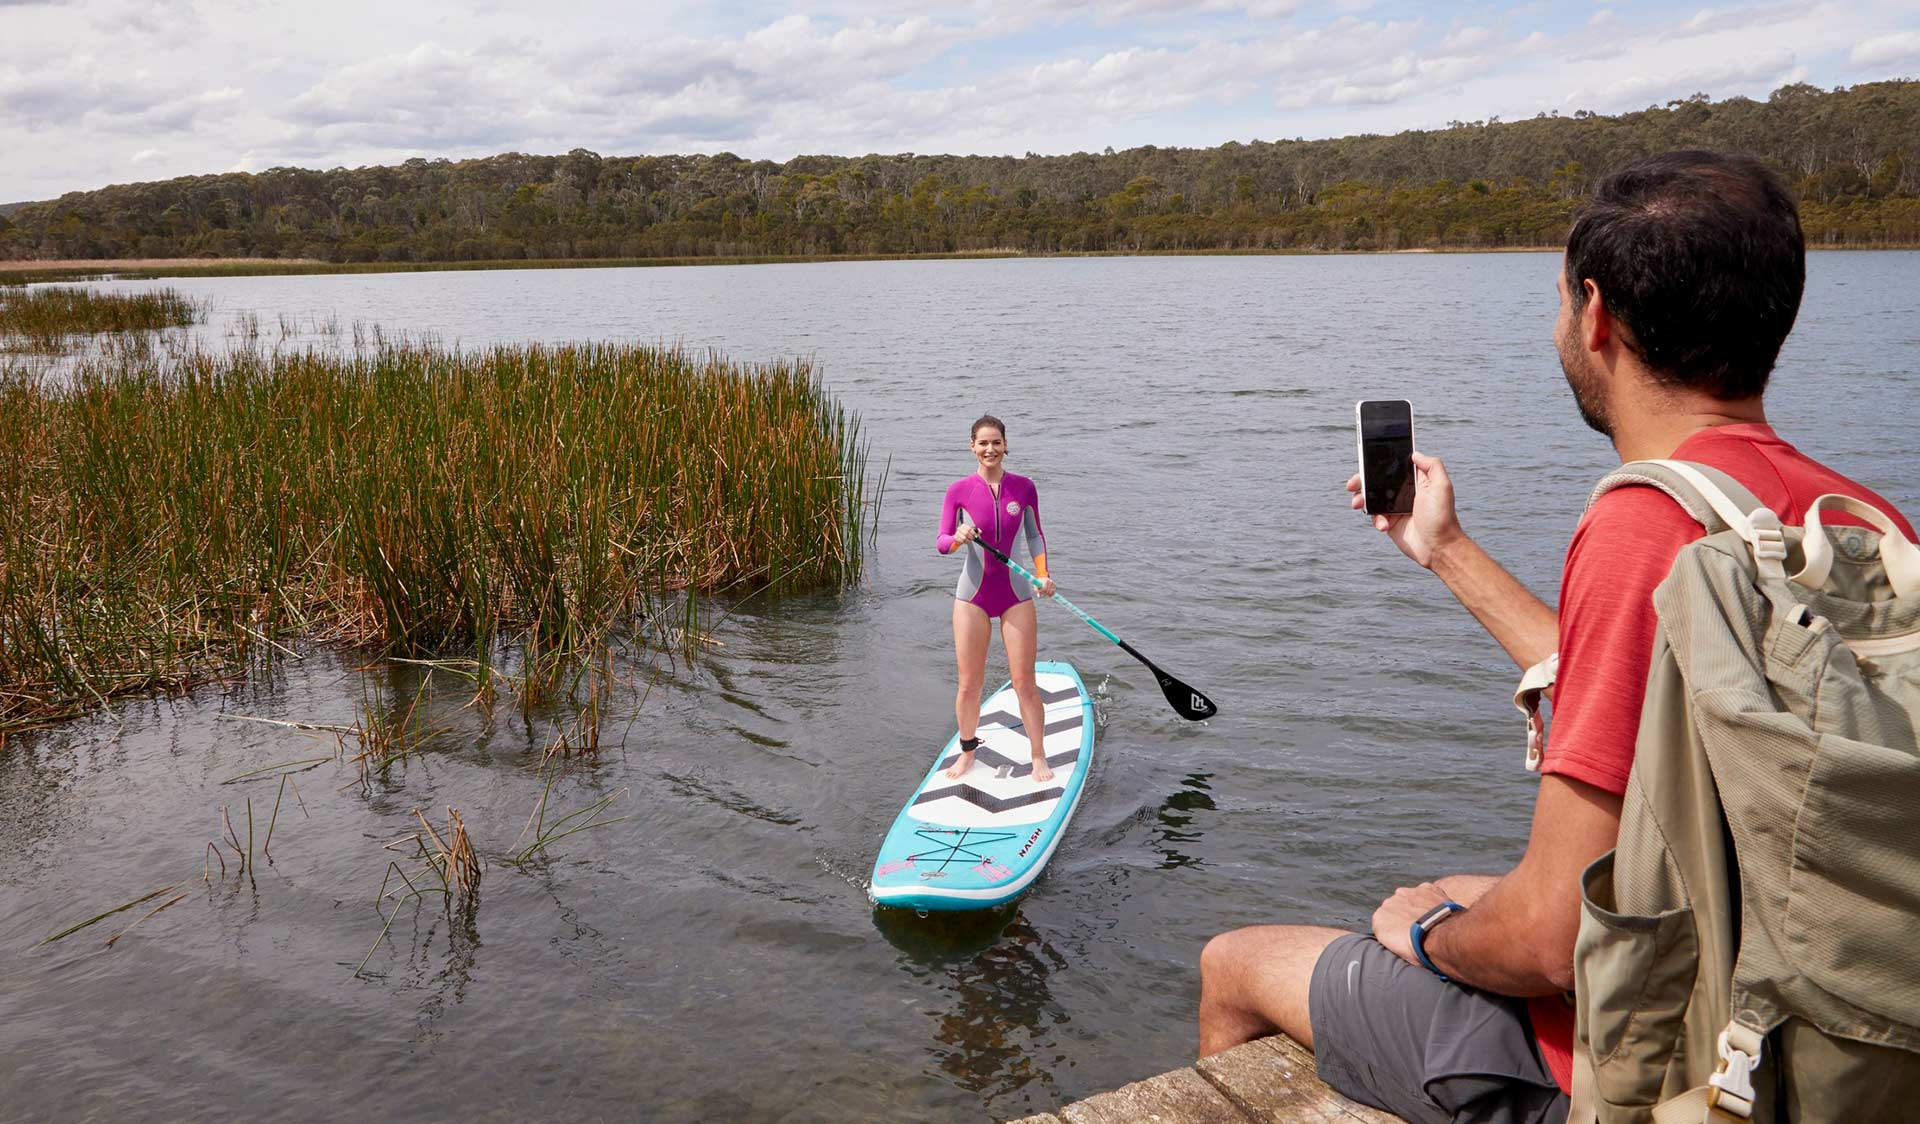 A man takes a photo from the bank of his partner on a stand-up paddle board on Lysterfield Lake.